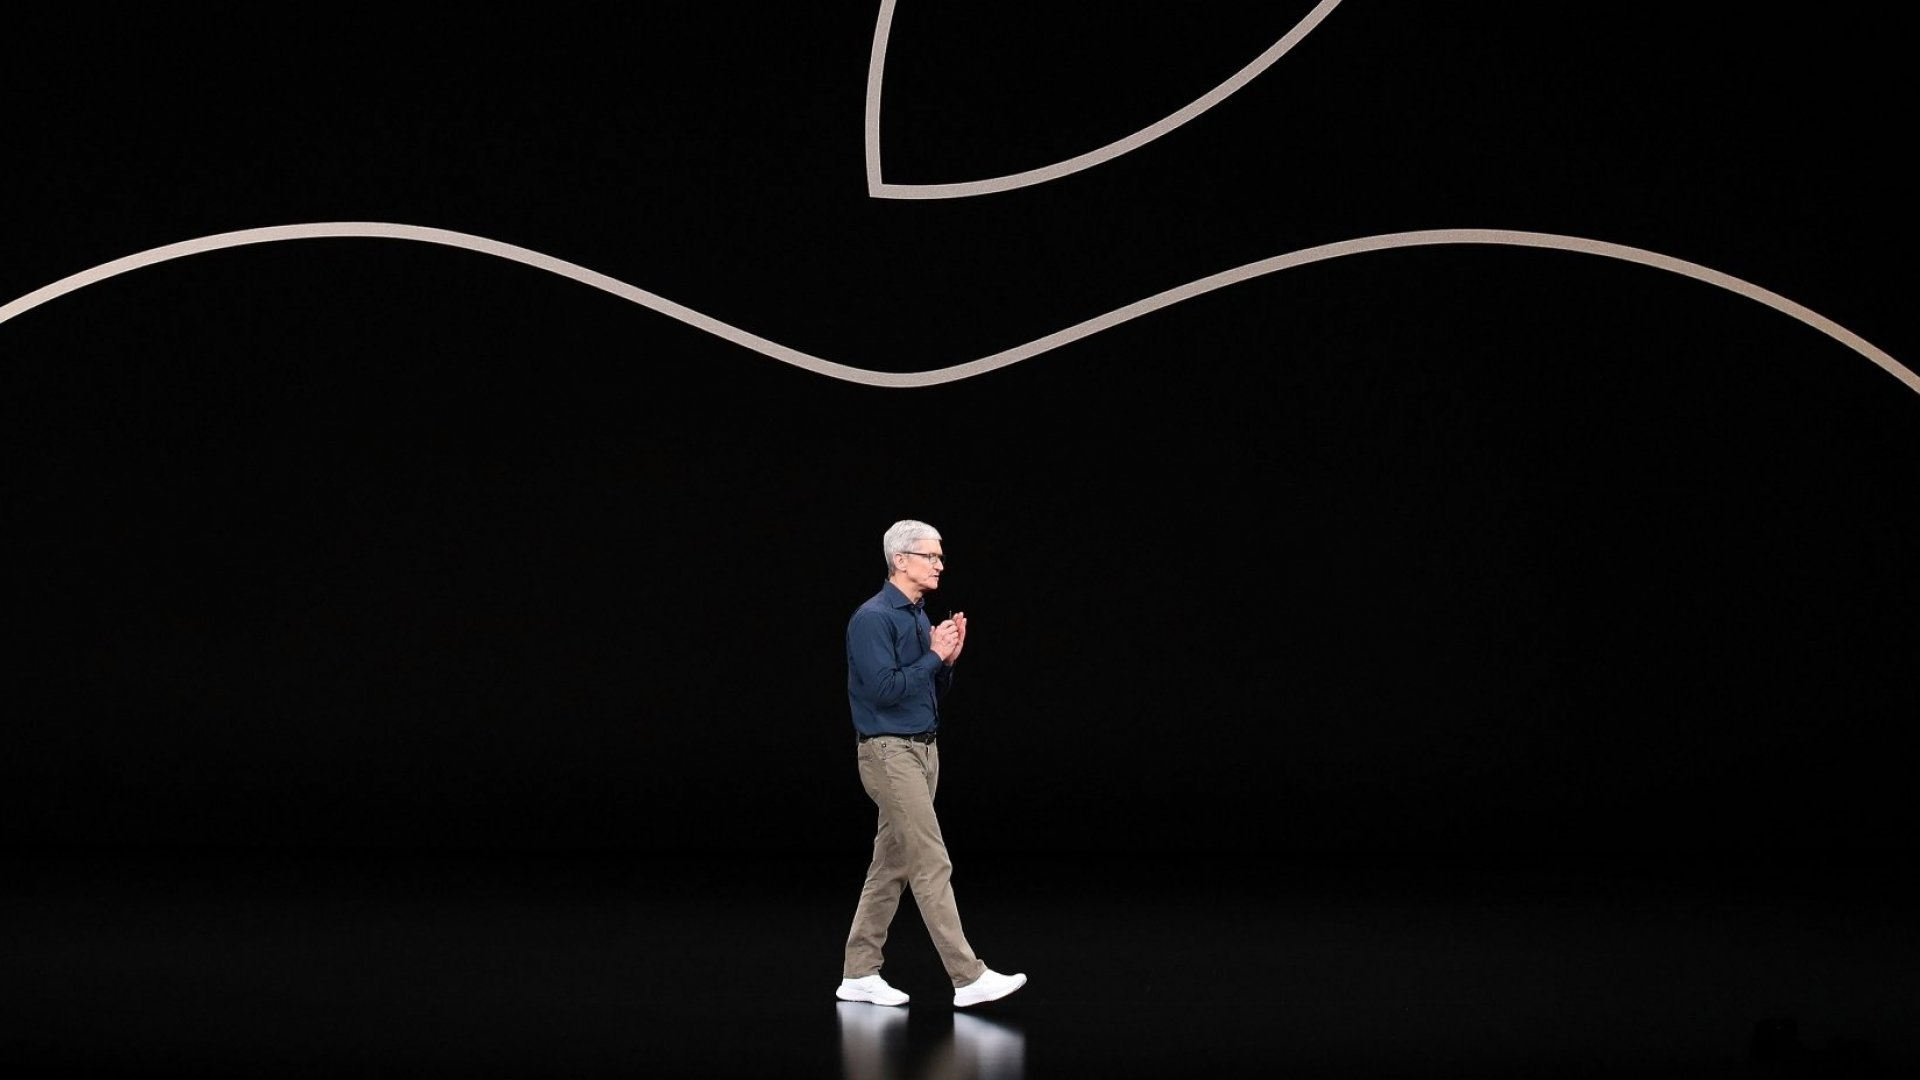 Here's What's Expected at Apple's Most Anticipated Event of 2019